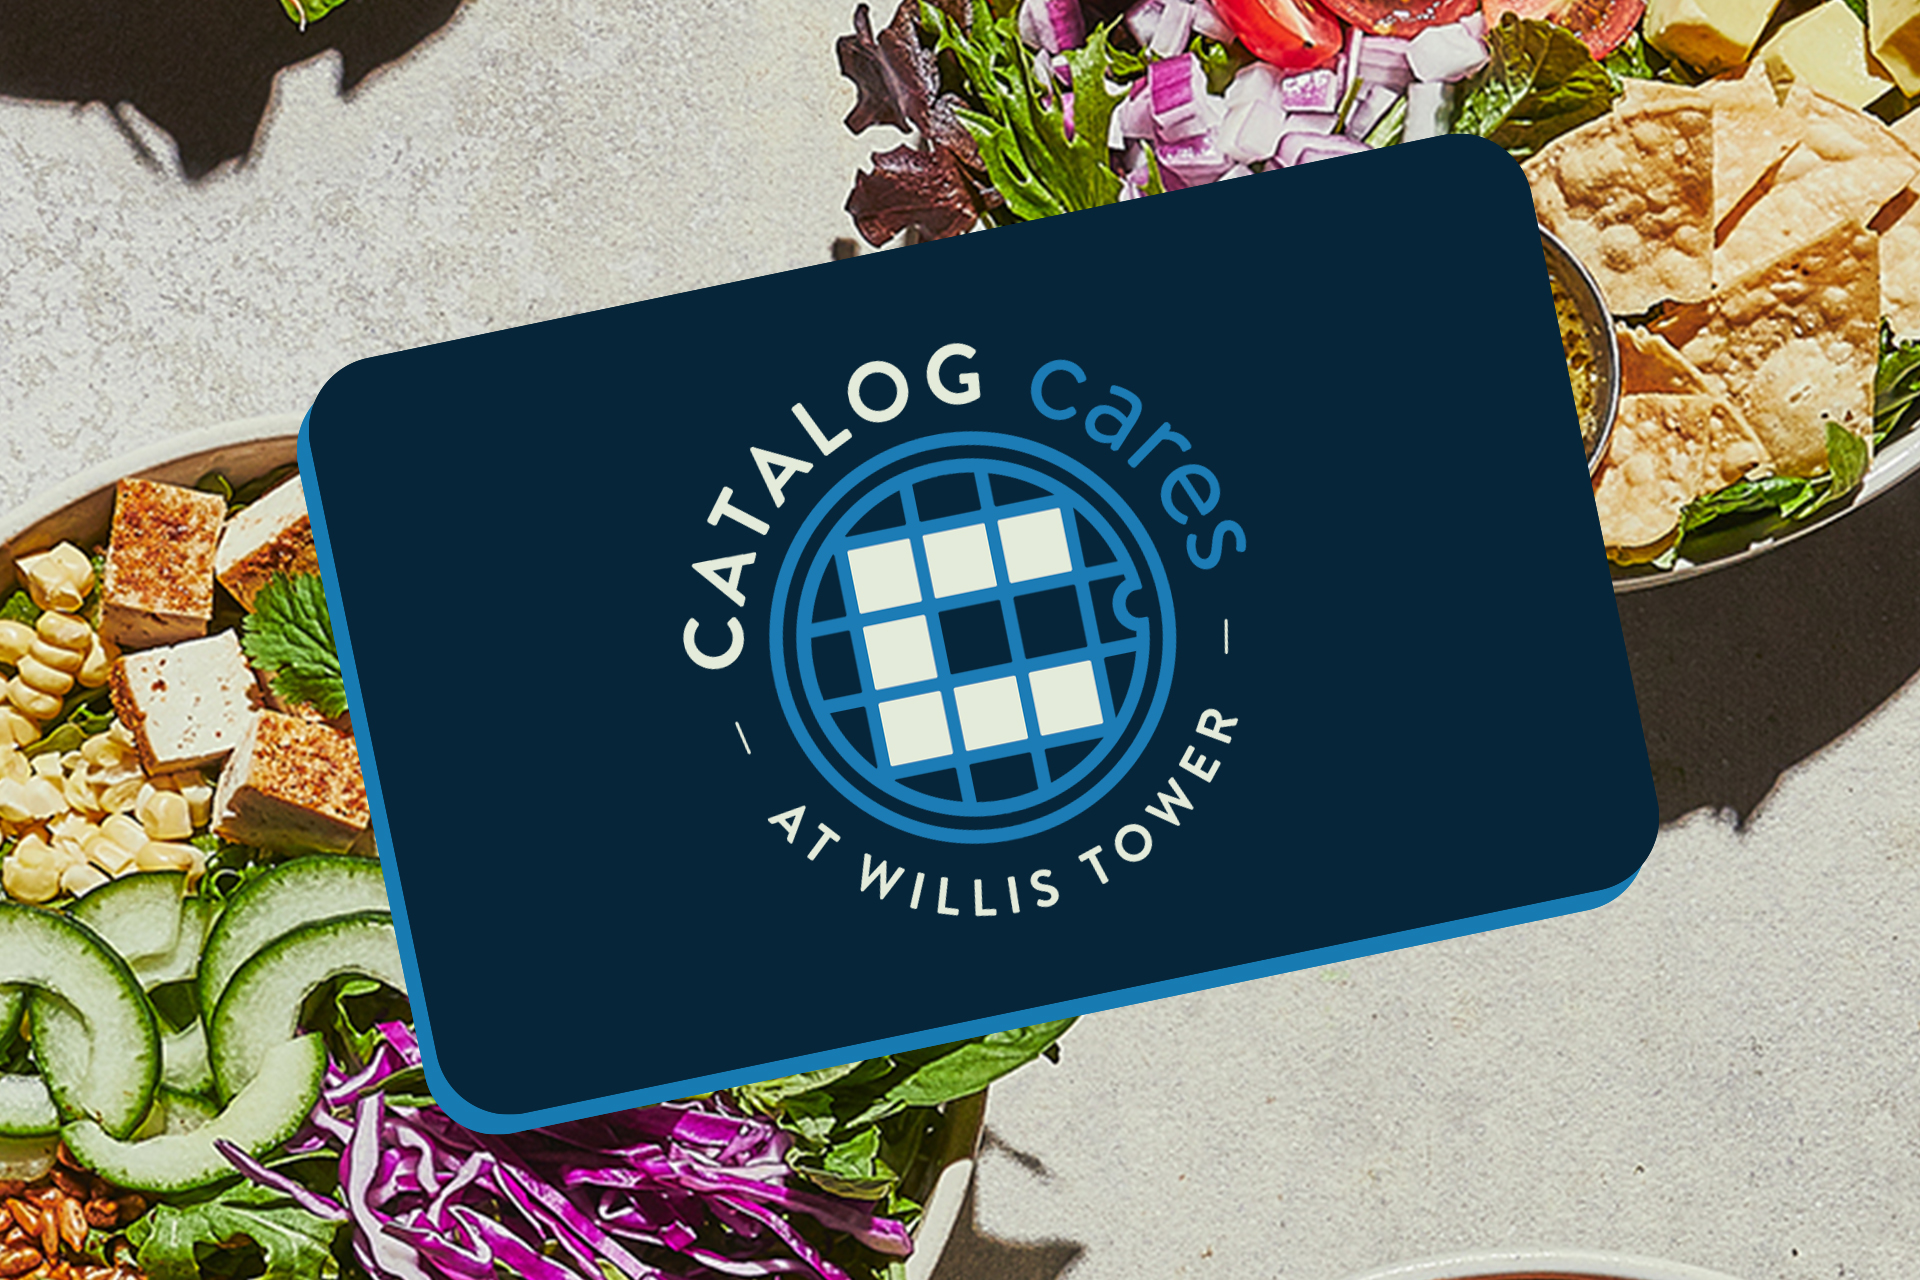 EQ Launches Catalog Cares Program at Willis Tower to Support Chicago Area Frontline Workers and Restaurants